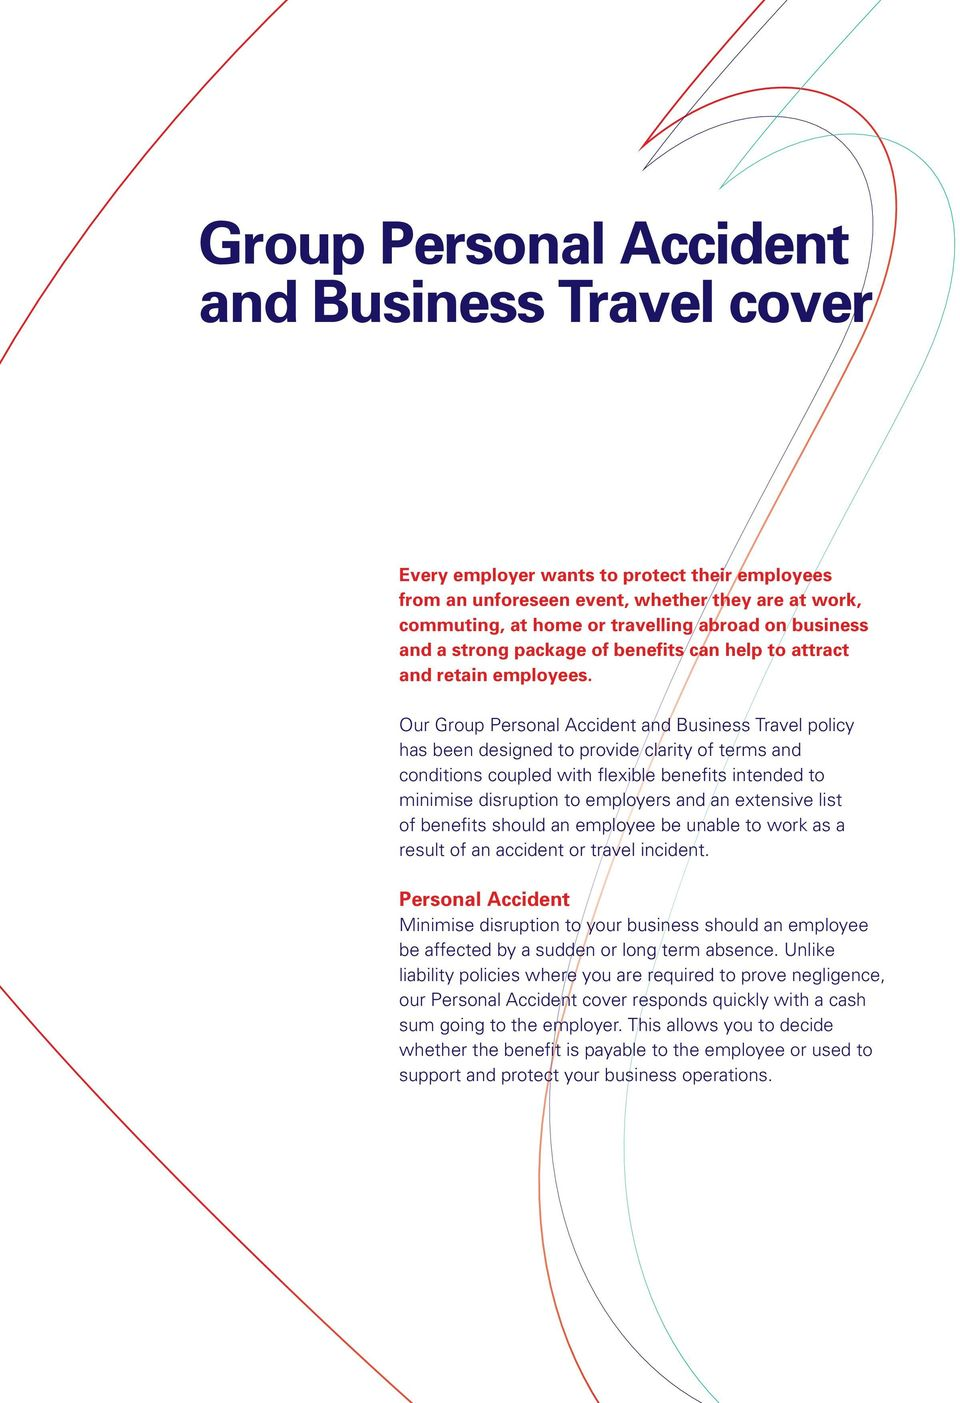 Our Group Personal Accident and Business Travel policy has been designed to provide clarity of terms and conditions coupled with flexible benefits intended to minimise disruption to employers and an